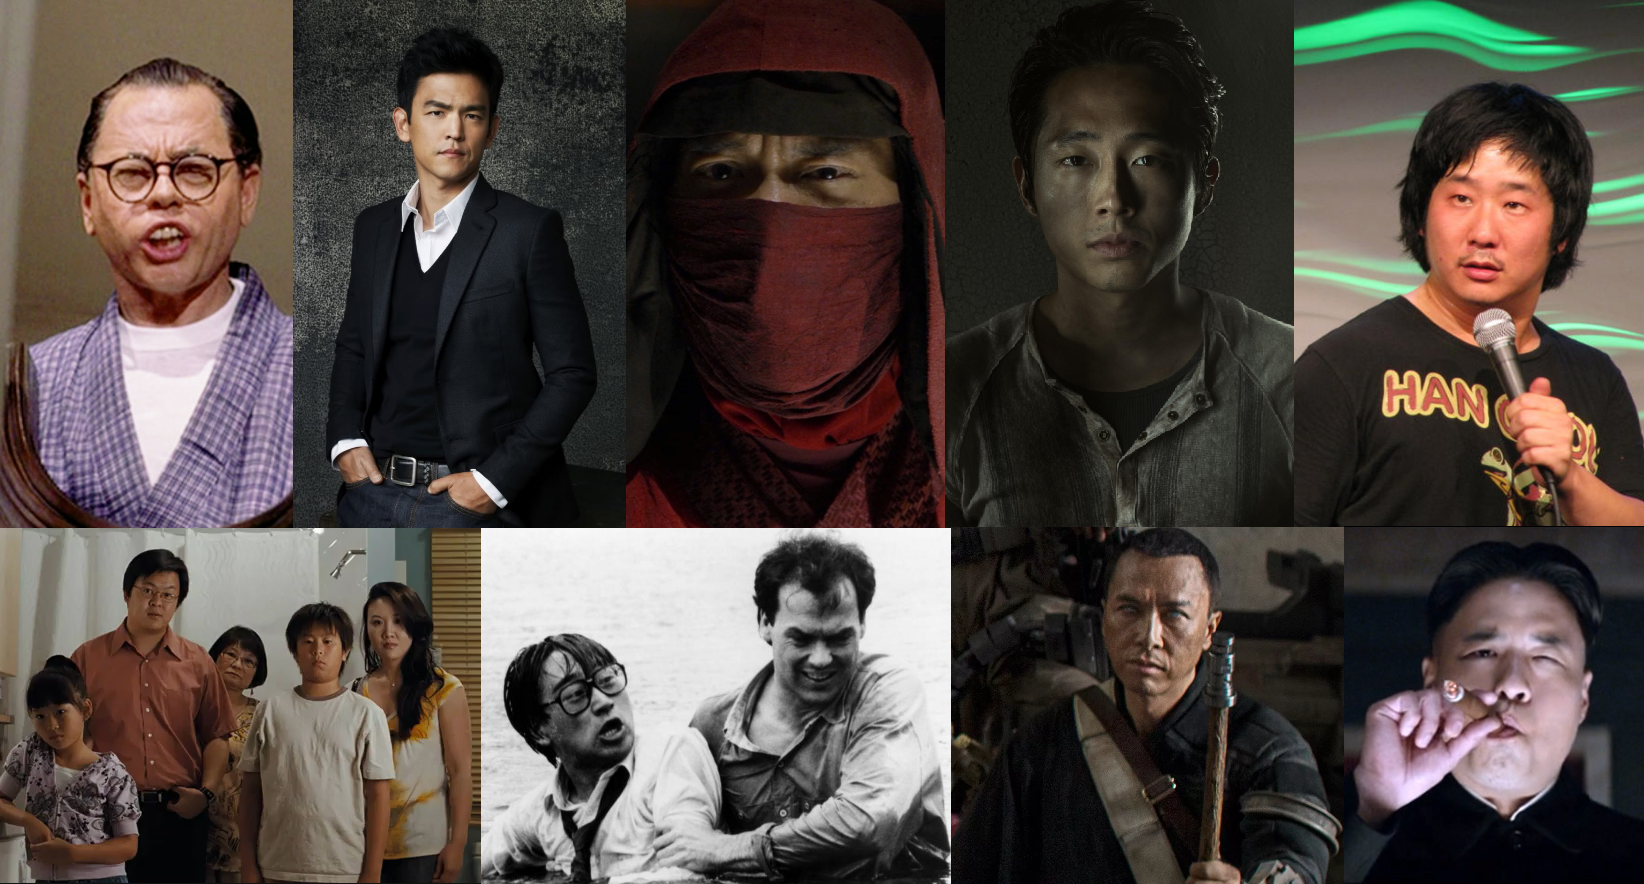 Asian stereotypes in movies